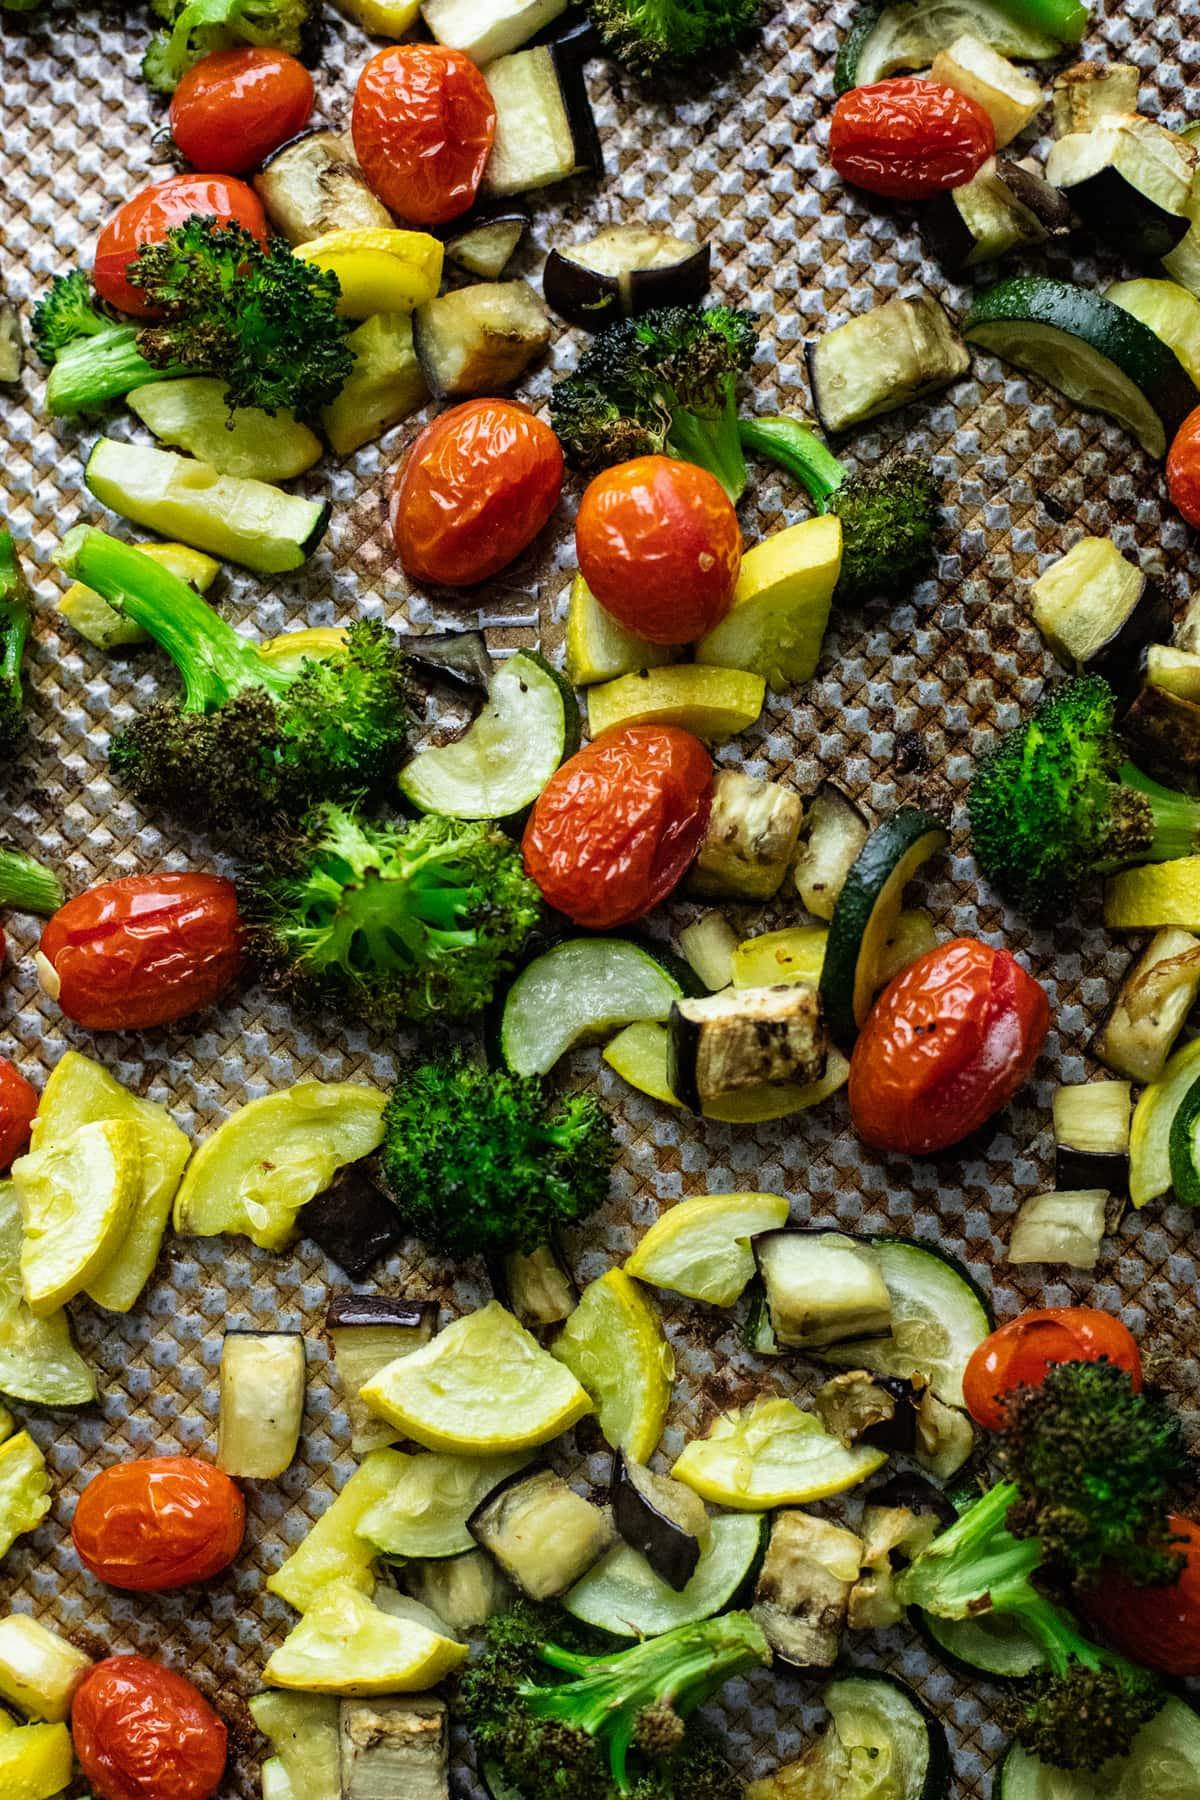 assorted roasted vegetables arranged on sheet pan.